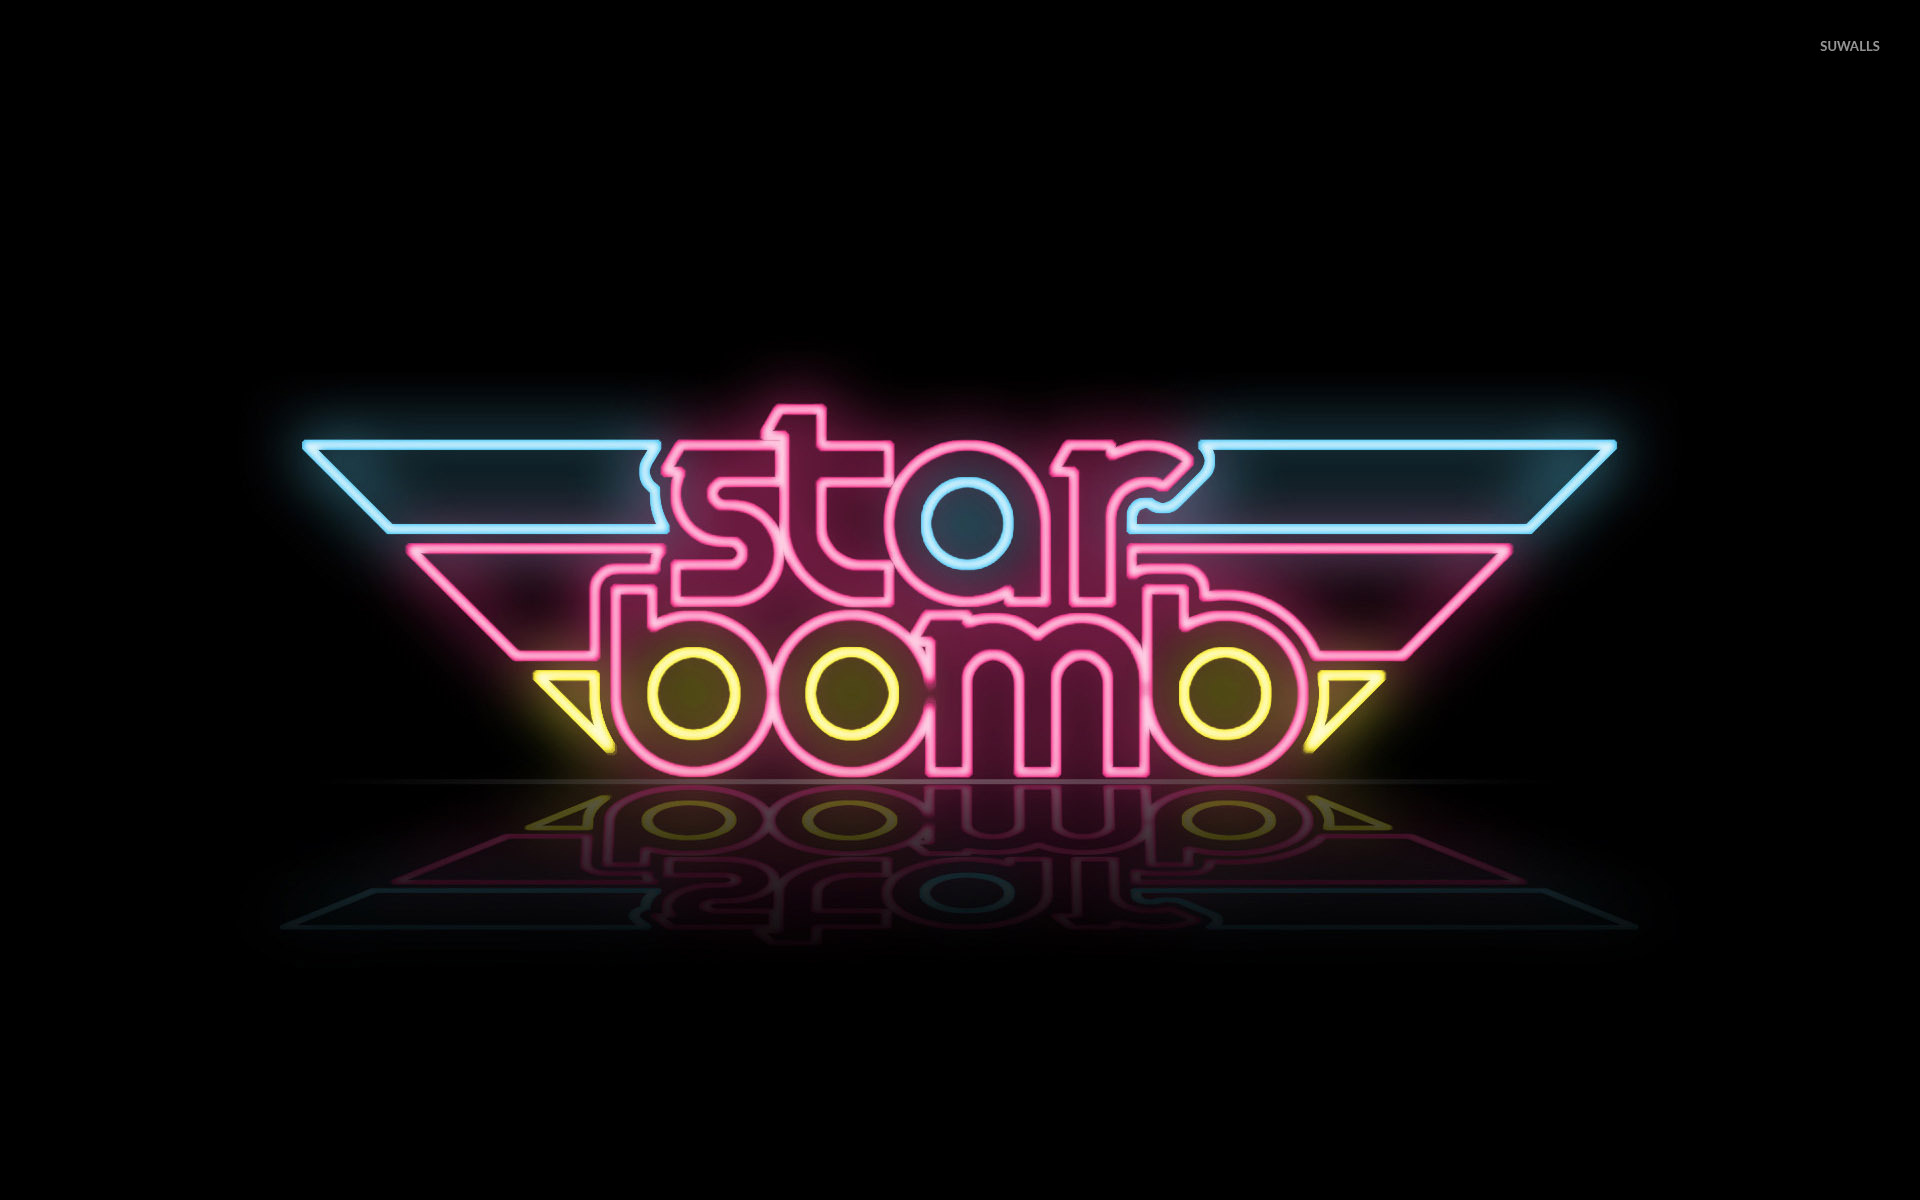 Star Bomb logo wallpaper.